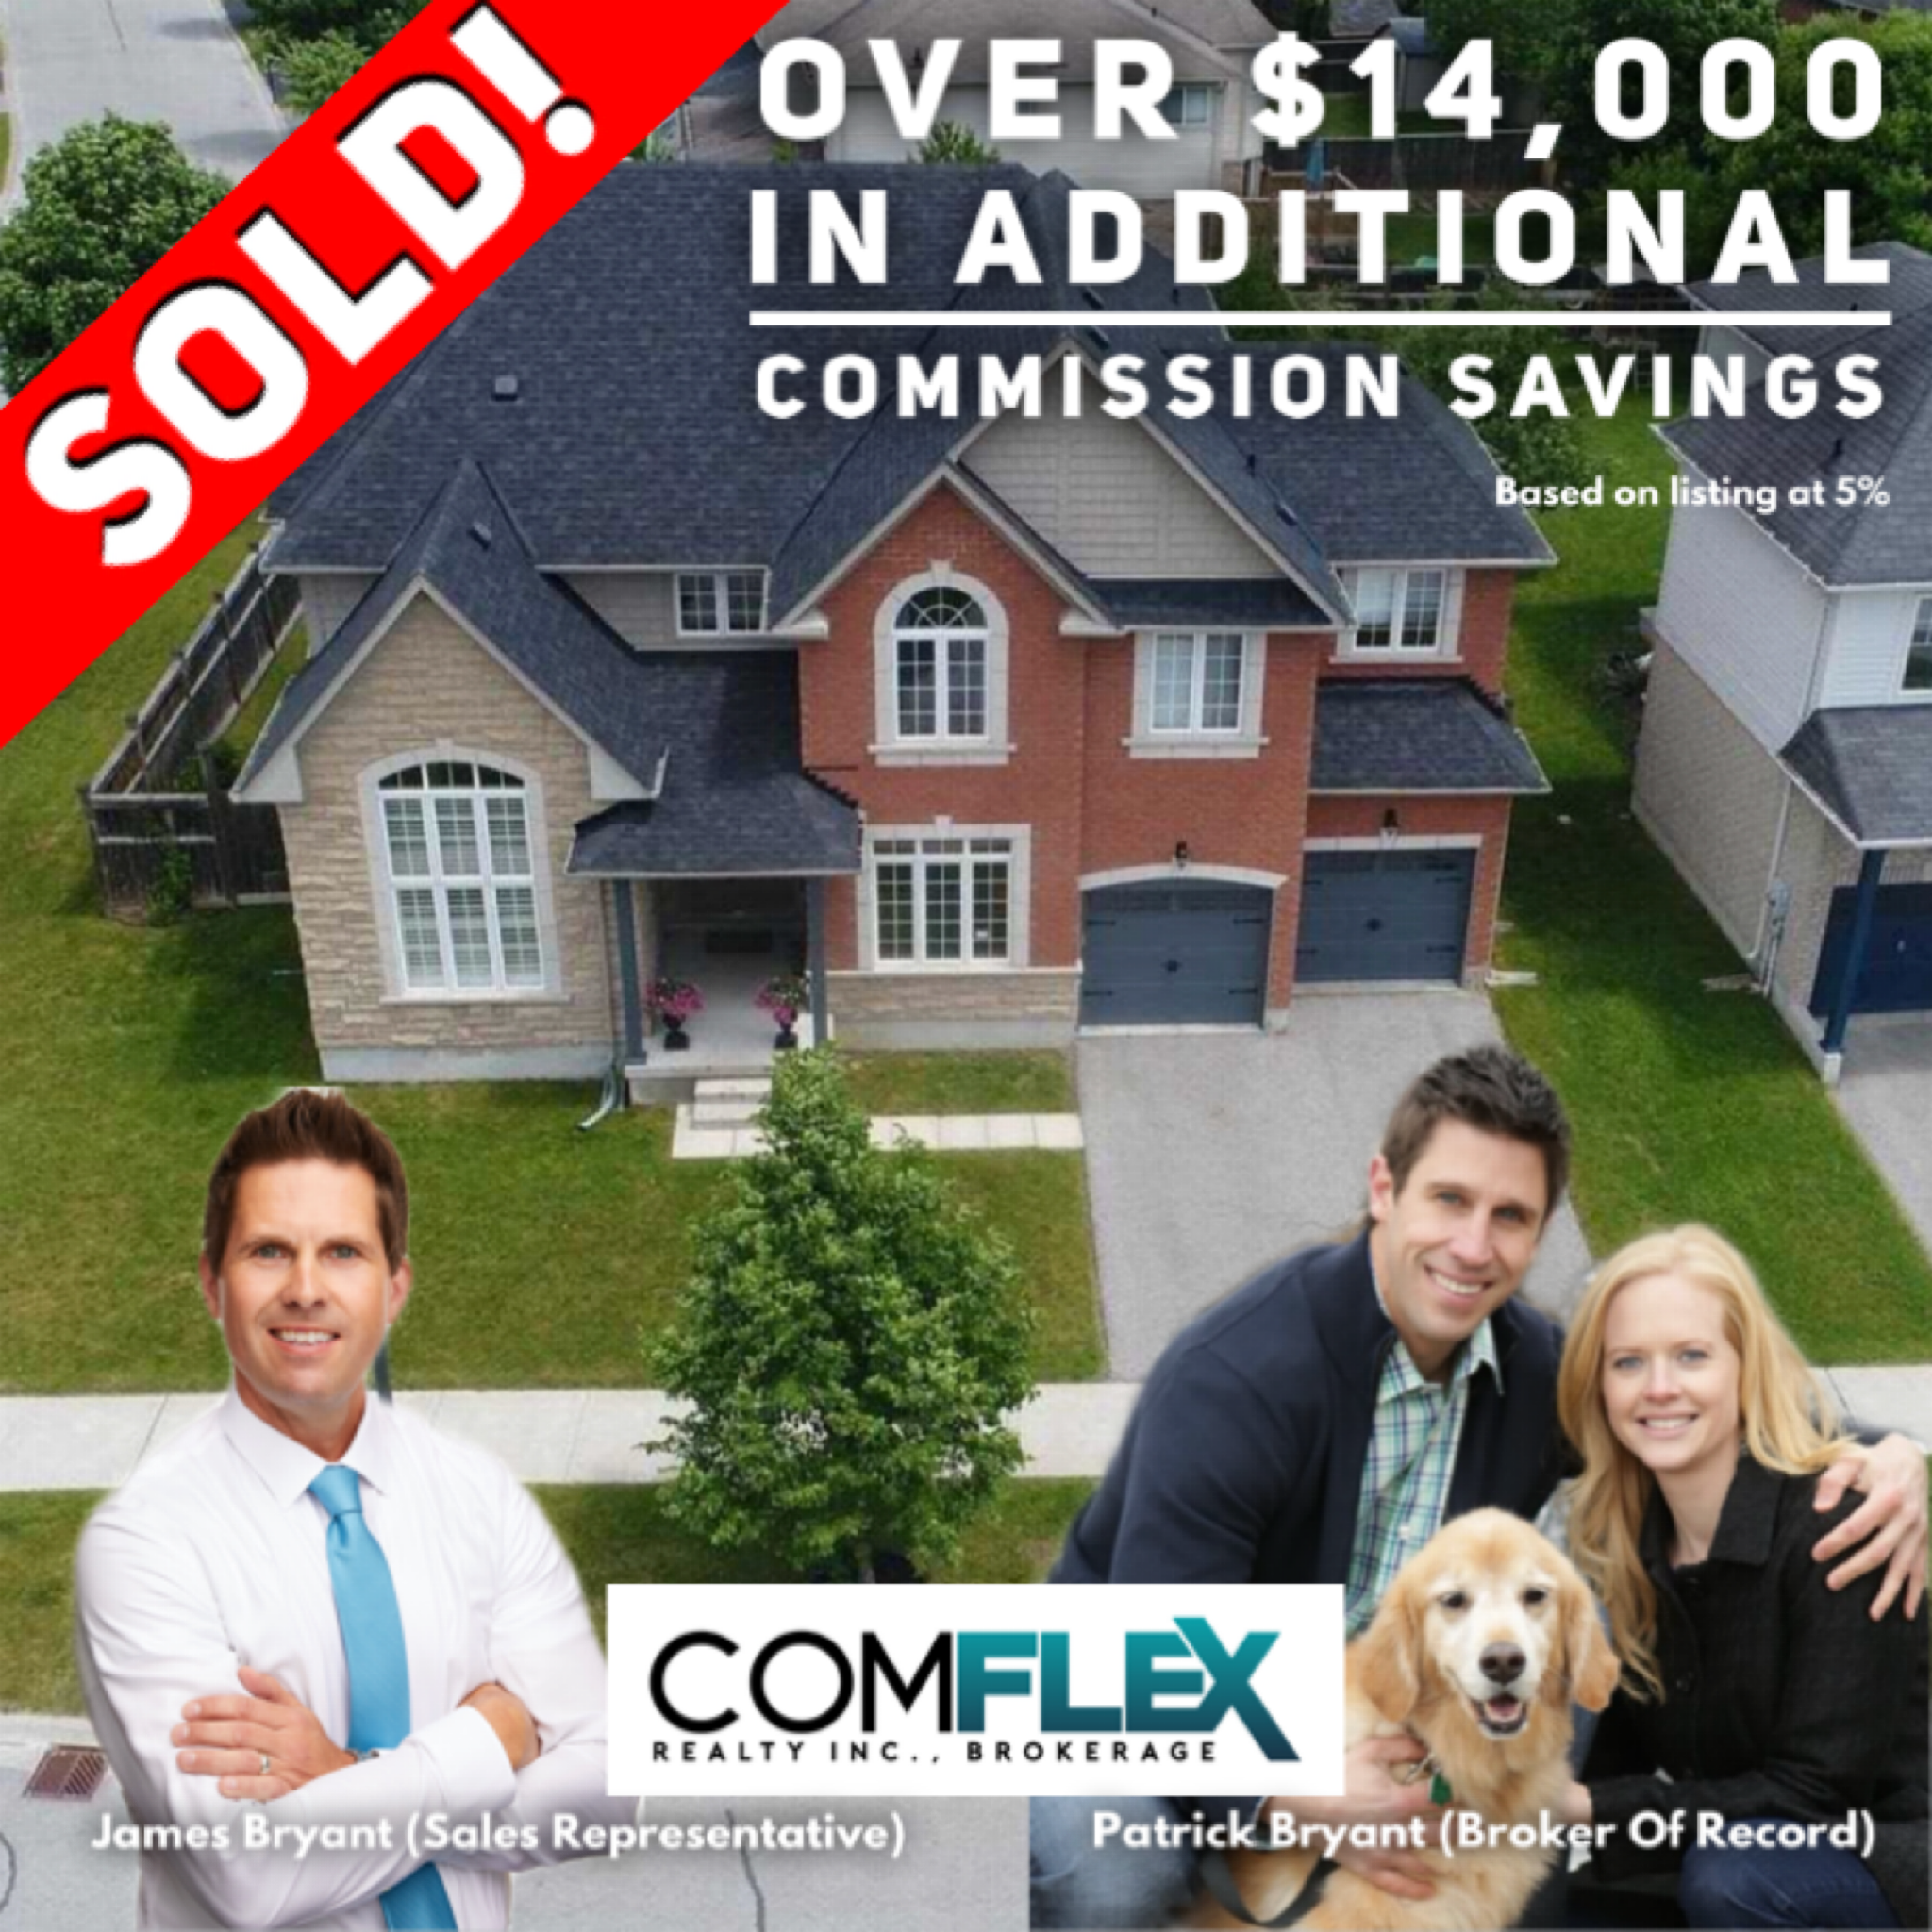 JUST SOLD! OVER $14,000 IN COMMISSION SAVINGS! YOU COULD BE NEXT!